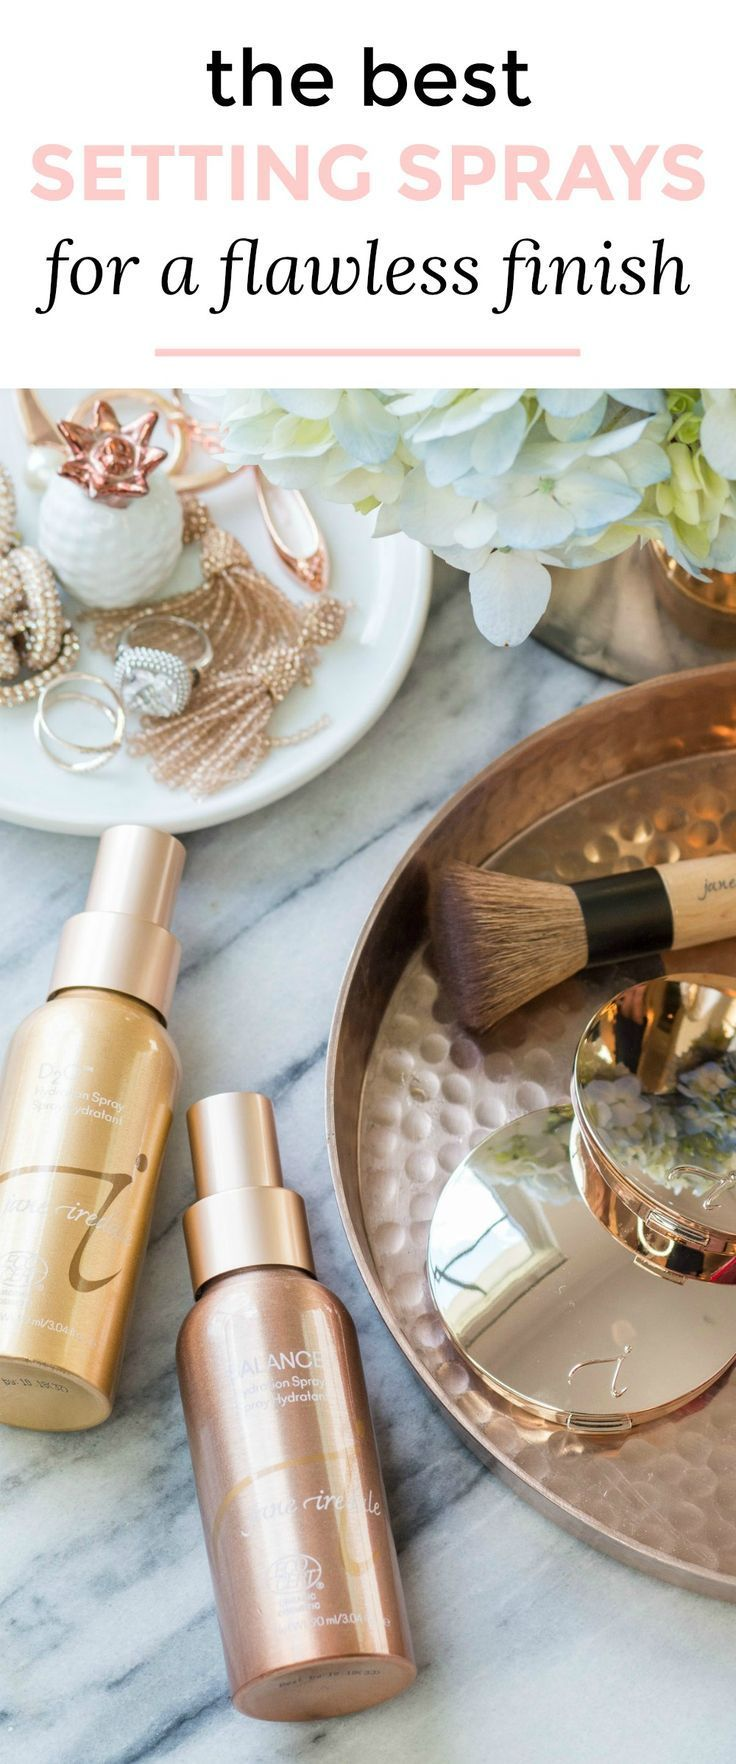 Learn how to make your skin look flawless with this easy full coverage foundation routine for all skin types with the best setting sprays for creating a flawless finish - jane iredale's PurePressed Base®️️️️ Mineral Foundation and POMMISST™️ Hydration Spray. Click to see the makeup tutorial by Orlando beauty blogger Ashley Brooke Nicholas. #TheSkincareMakeup #BeautyWithBrilliance sponsored by jane iredale   easy makeup tutorial, foundation routine, foundation tutorial, best makeup, b